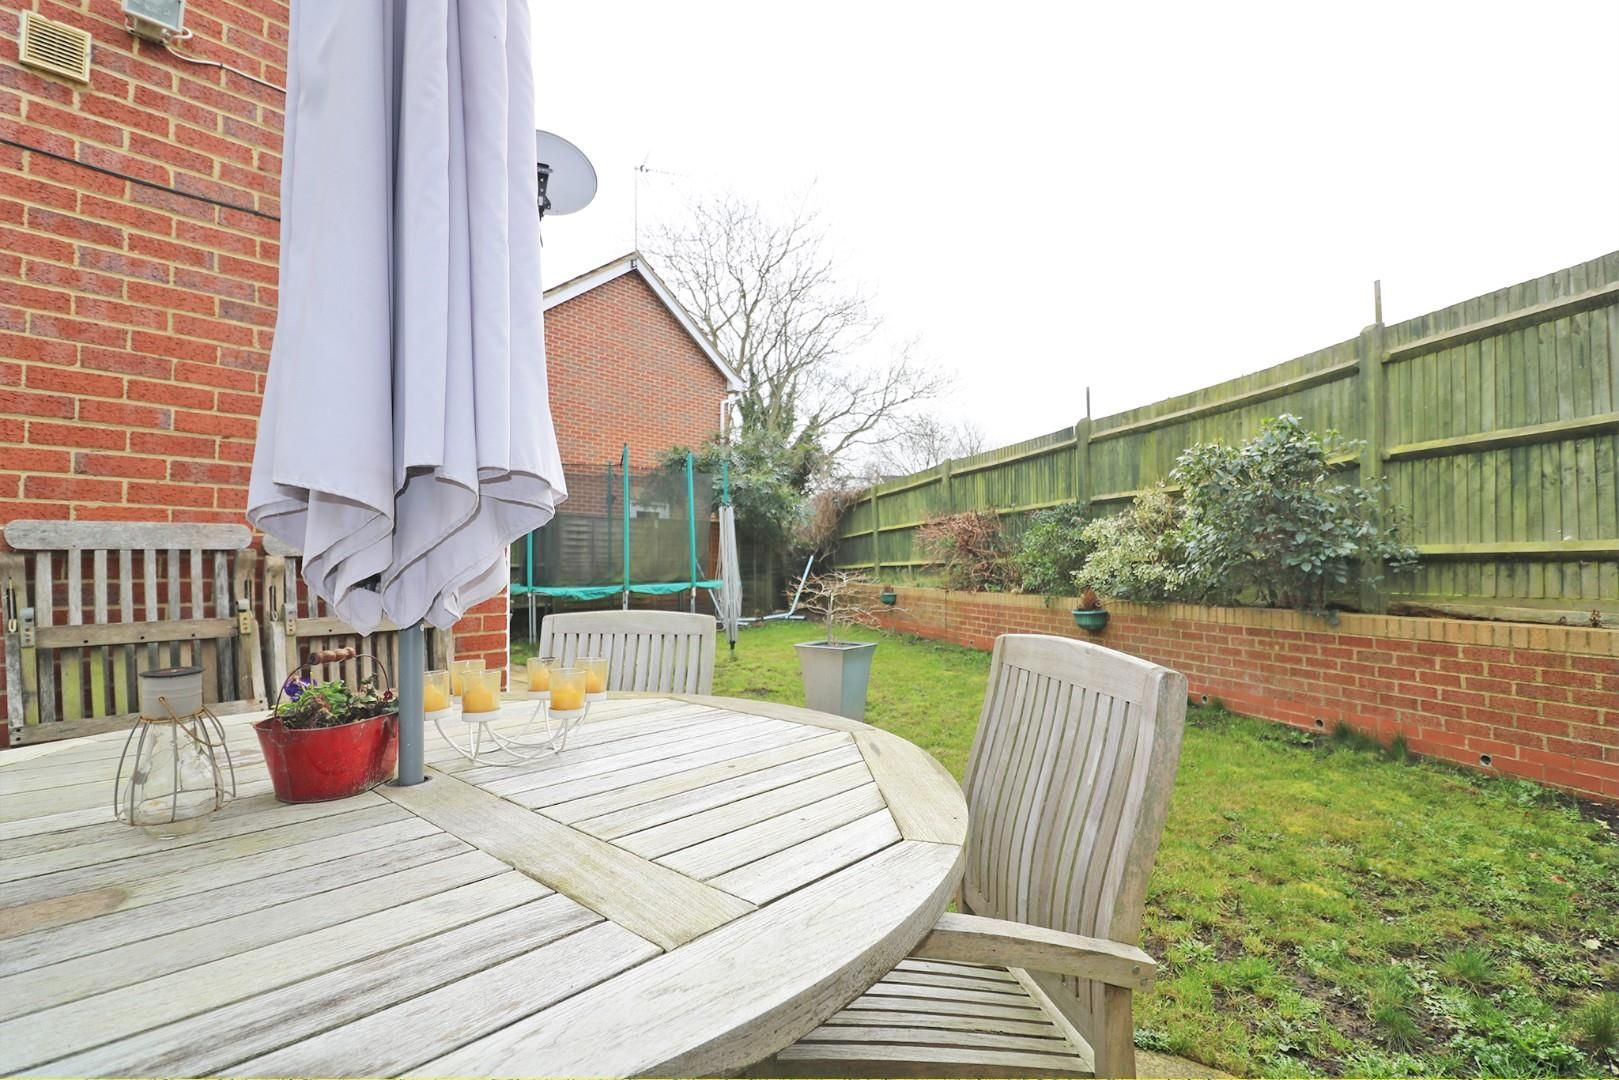 3 bed house for sale in Woodley 3